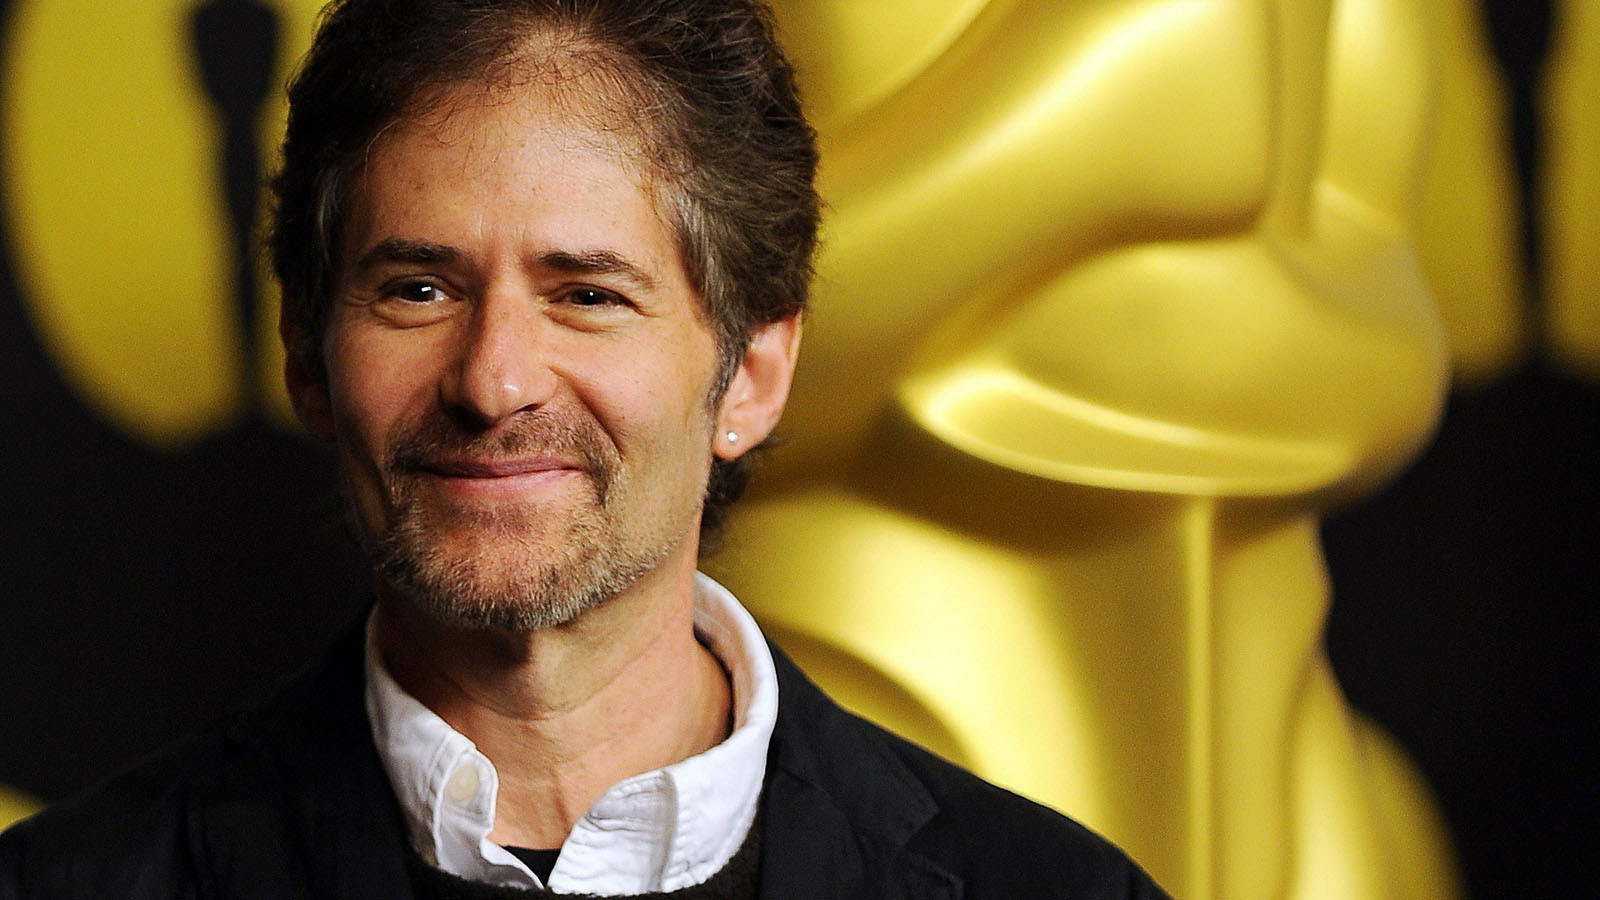 james horner the portraitjames horner rose, james horner - for the love of a princess, james horner titanic, james horner the portrait, james horner rose piano, james horner remember me, james horner музыка, james horner mp3, james horner avatar, james horner rose piano скачать, james horner the portrait скачать, james horner i see you, james horner – the portrait (recreated), james horner скачать бесплатно, james horner титаник, james horner one last wish, james horner paso doble, james horner слушать, james horner remember me скачать, james horner music